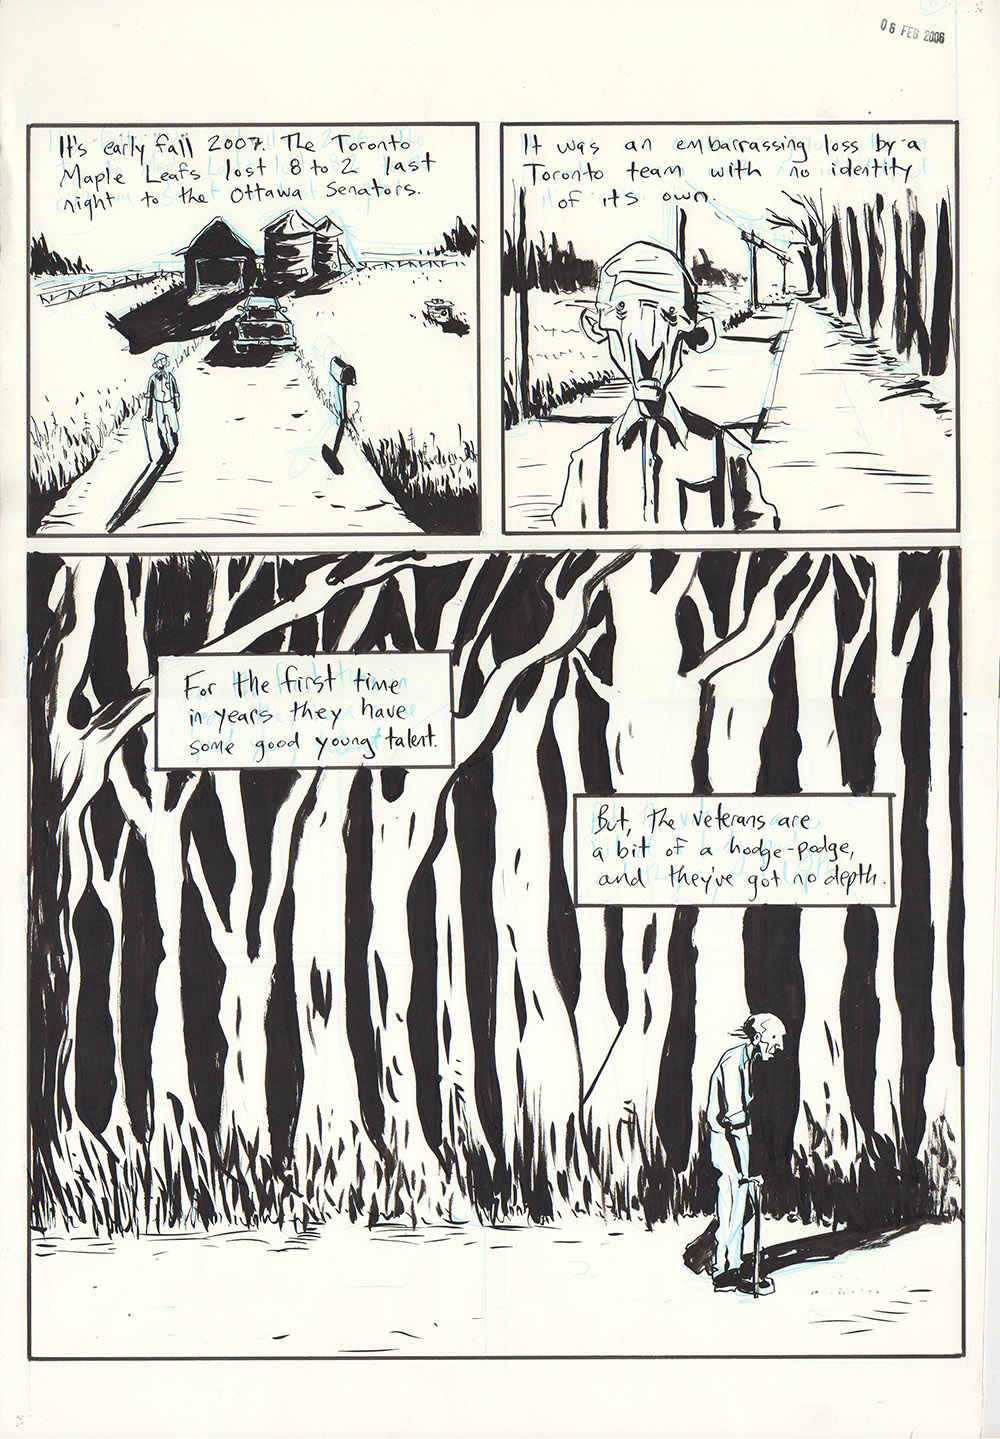 Essex County Book 2: Ghost Stories - page 122